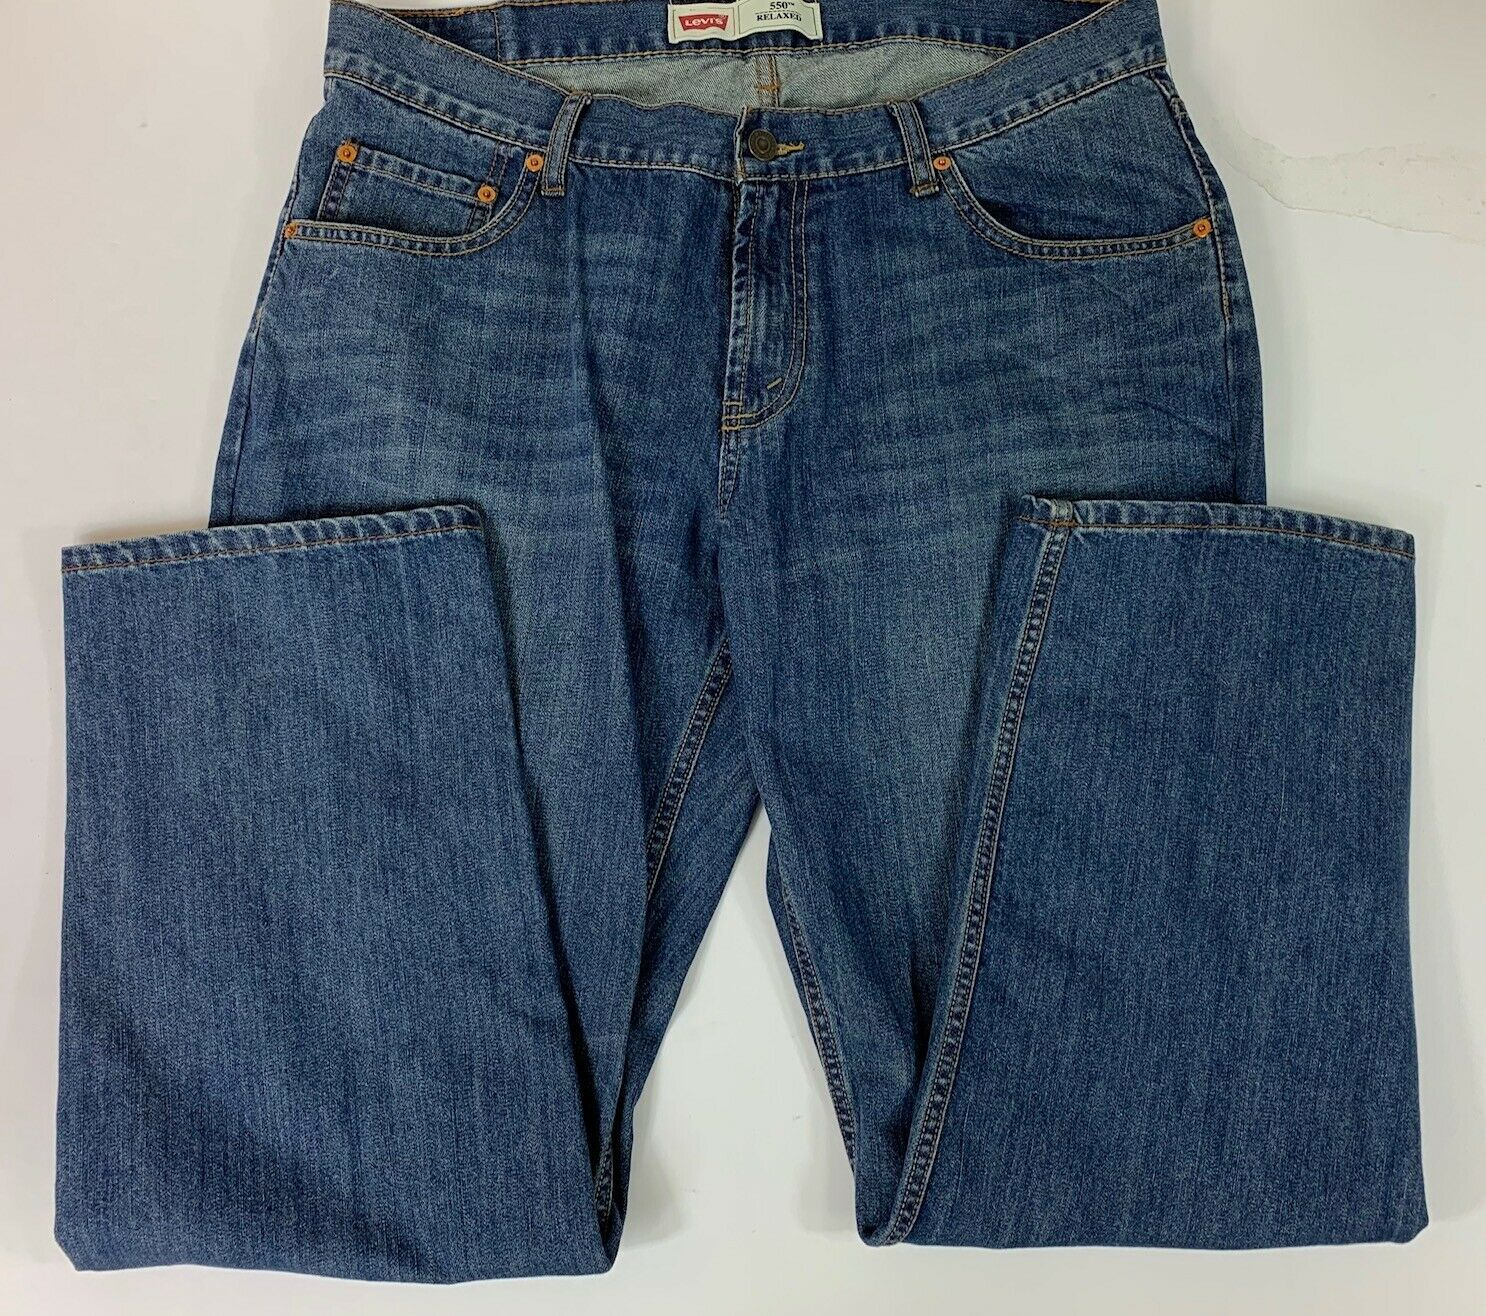 LEVI  550 BOY'S RELAXED FIT JEANS 18 Husky 36 x 29  image 3